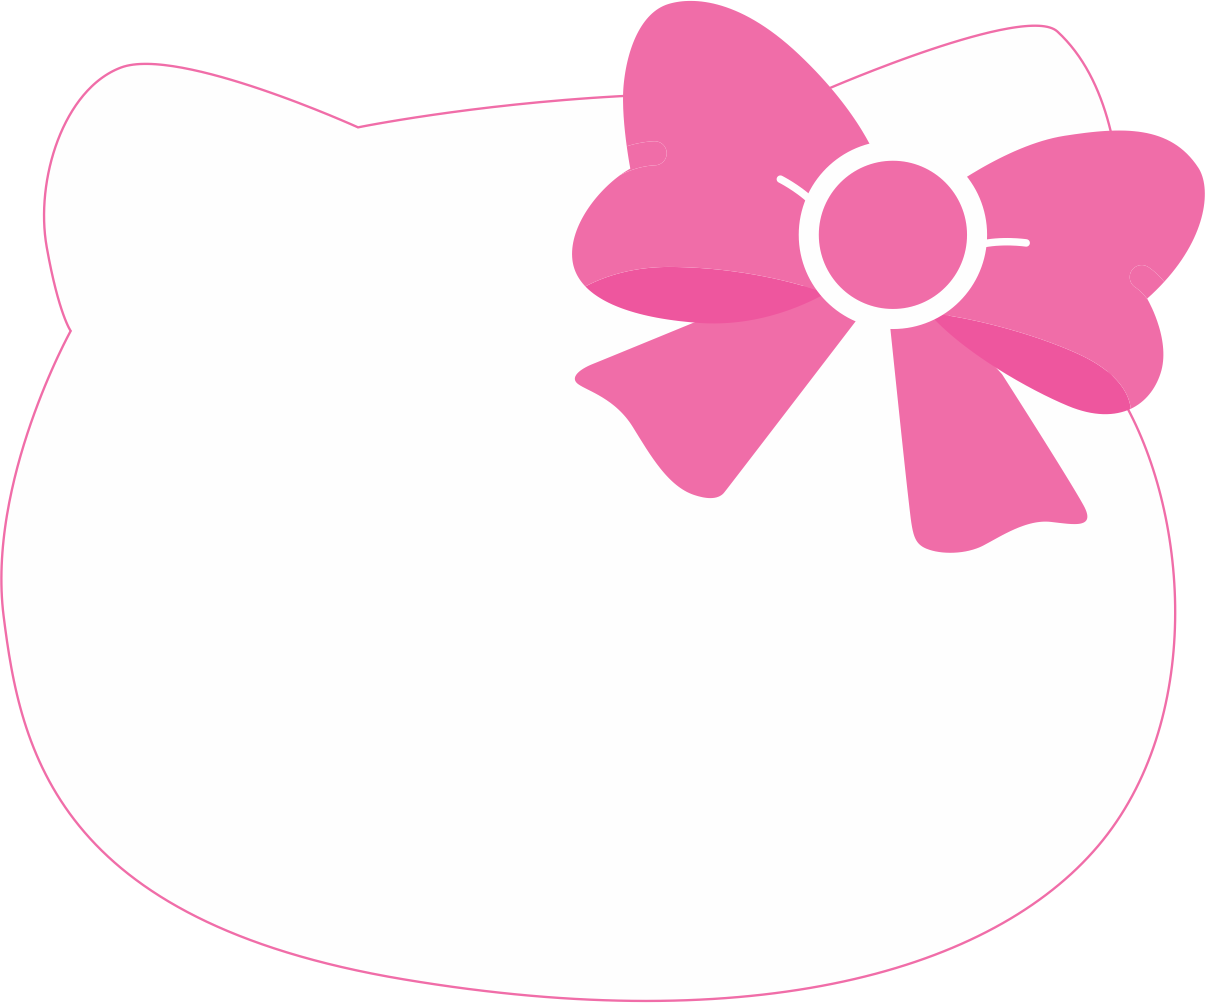 Hello kitty head clipart image 2333 transparentpng hello kitty head clipart image 2333 free download toneelgroepblik Choice Image